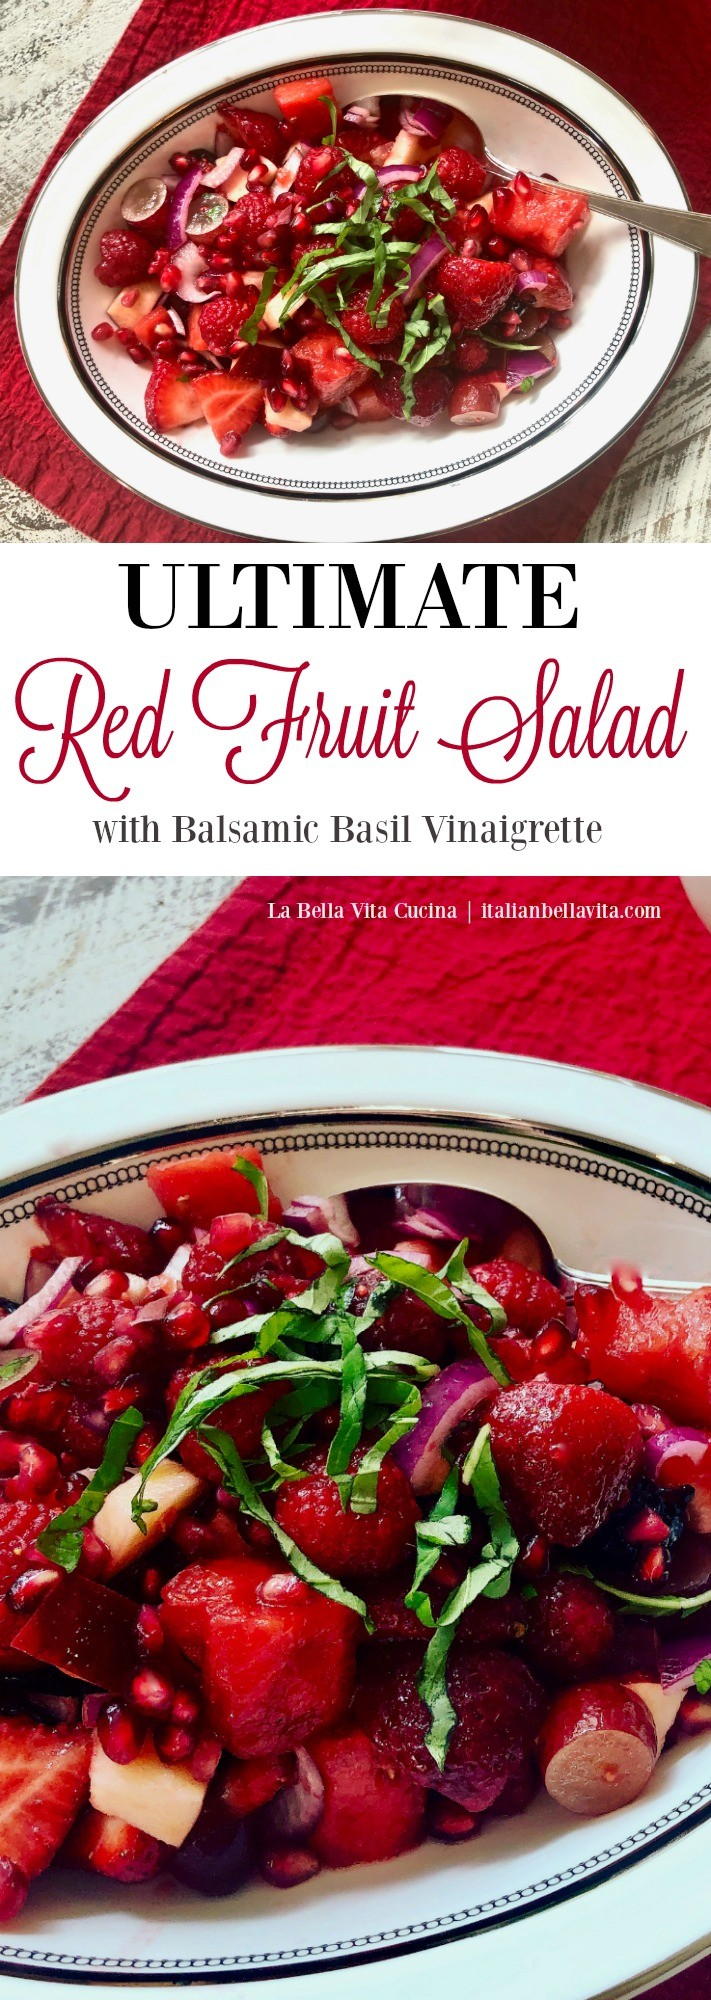 Cucina & Amore White Balsamic Vinegar Ultimate Red Fruit Salad With Balsamic And Basil Vinaigrette La